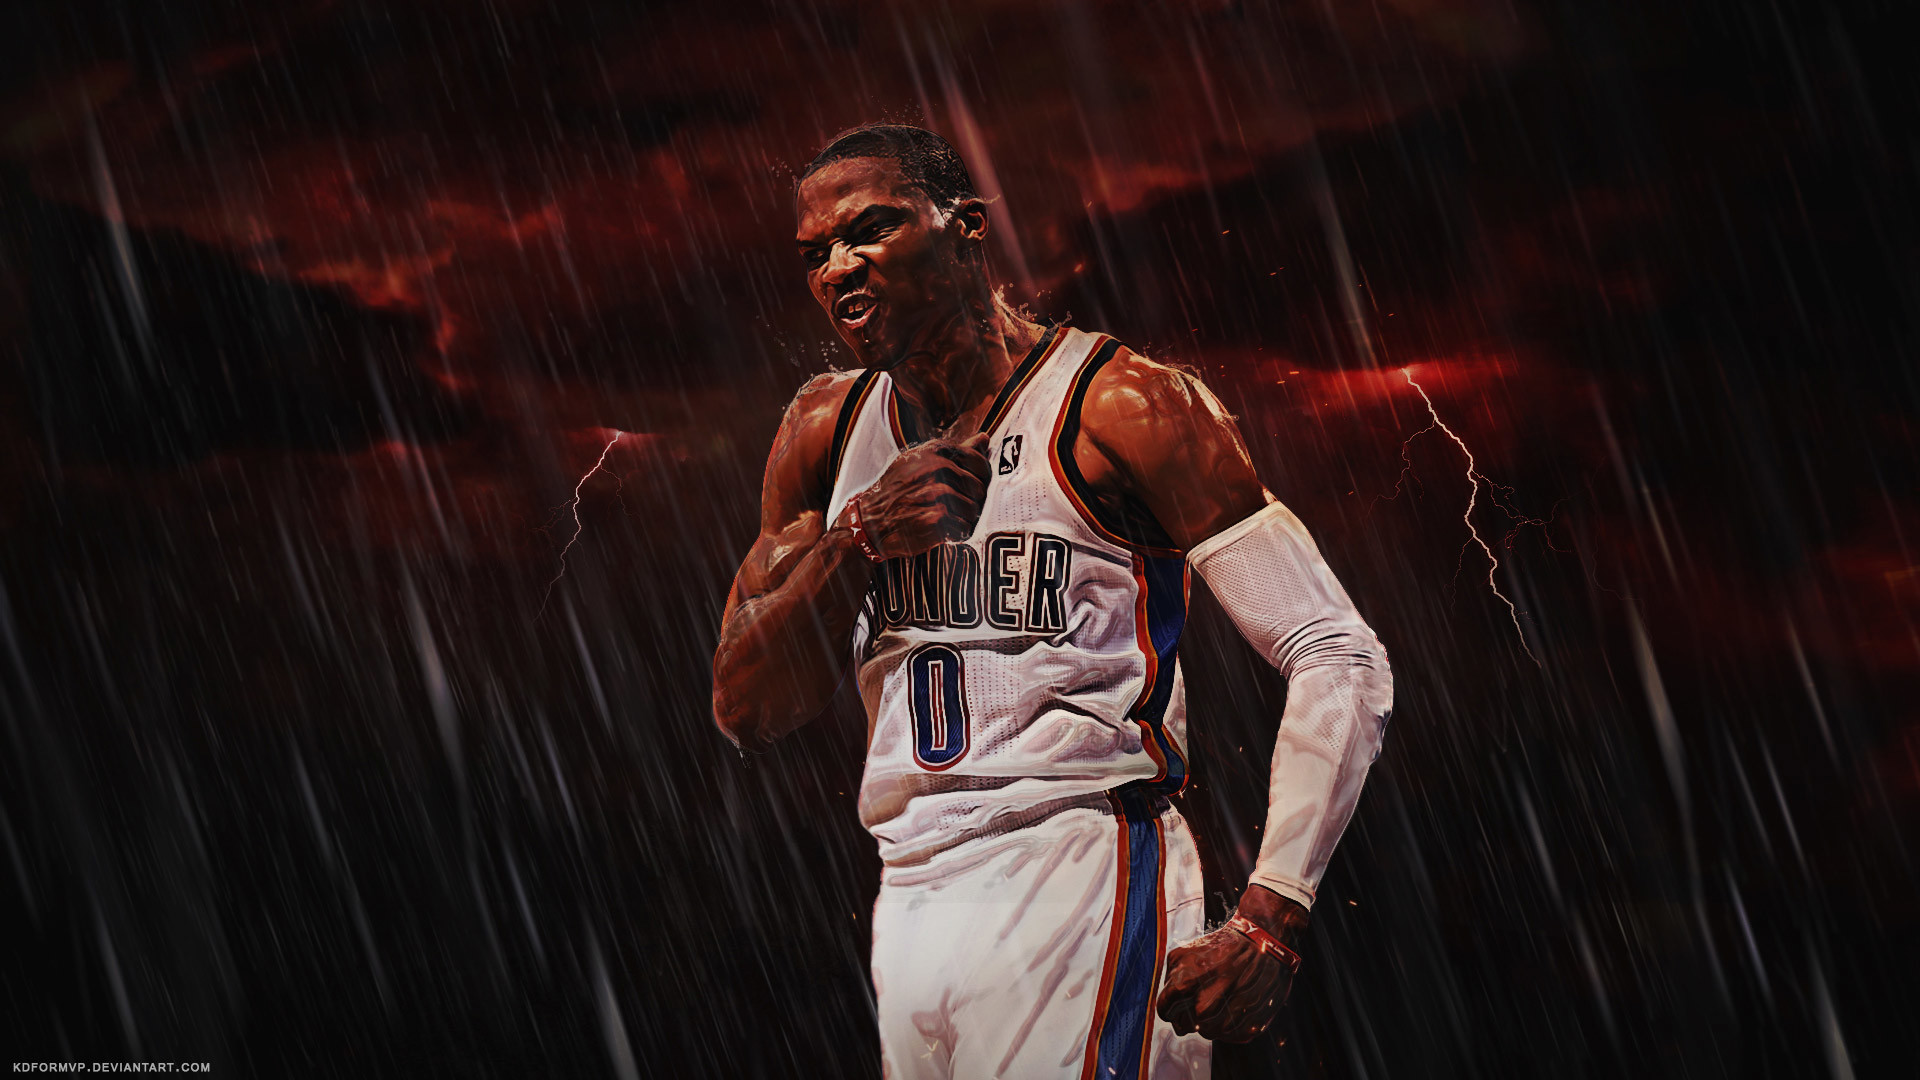 1920x1080 Russell Westbrook Thunder 2015-2016 Wallpaper